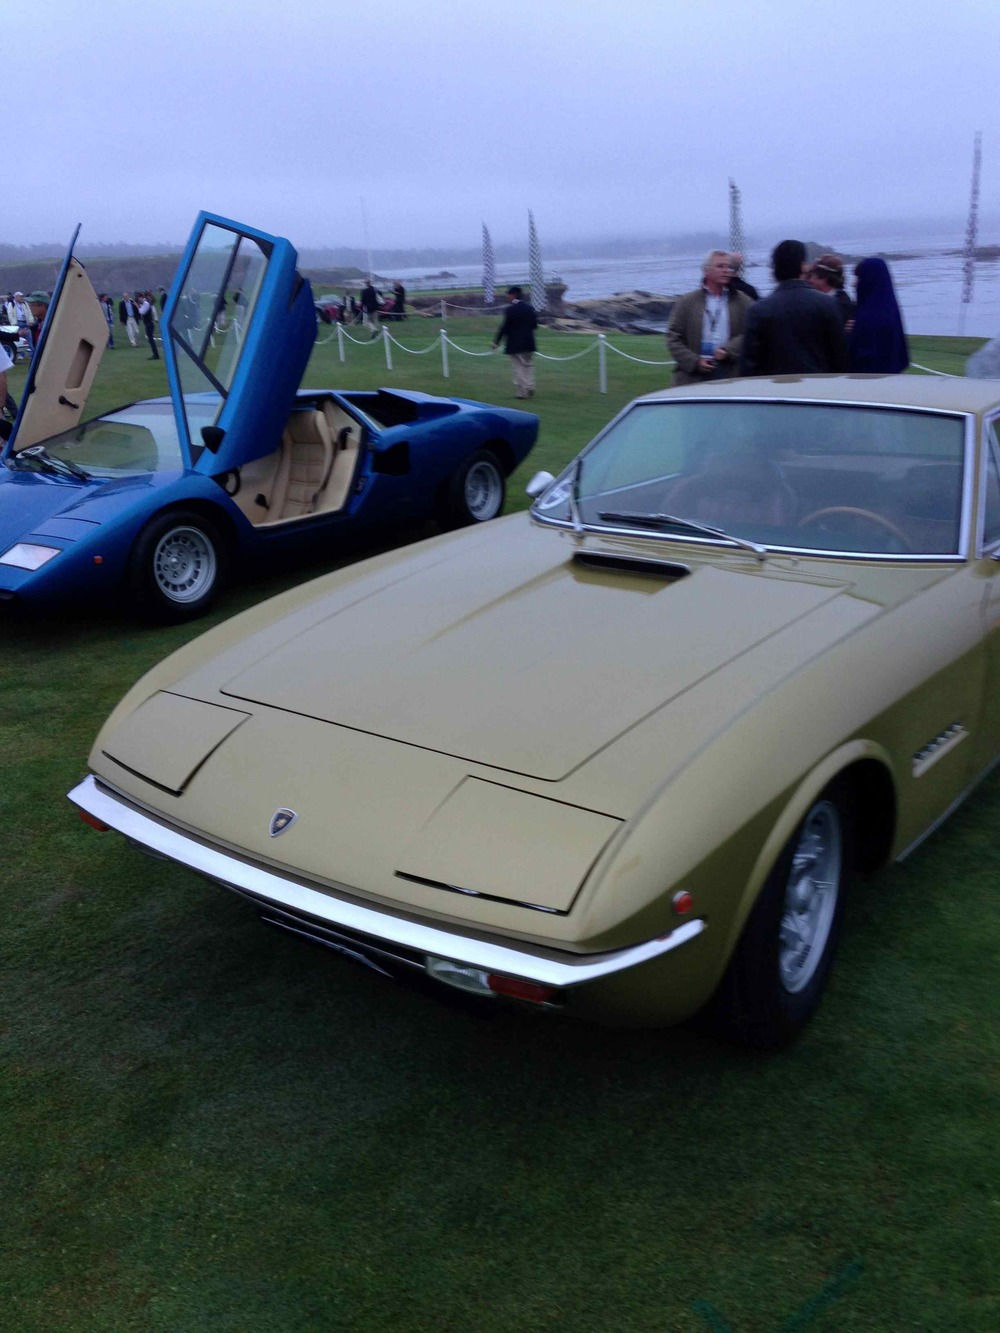 By the dawn's early light, Lamborghini Islero and Countach